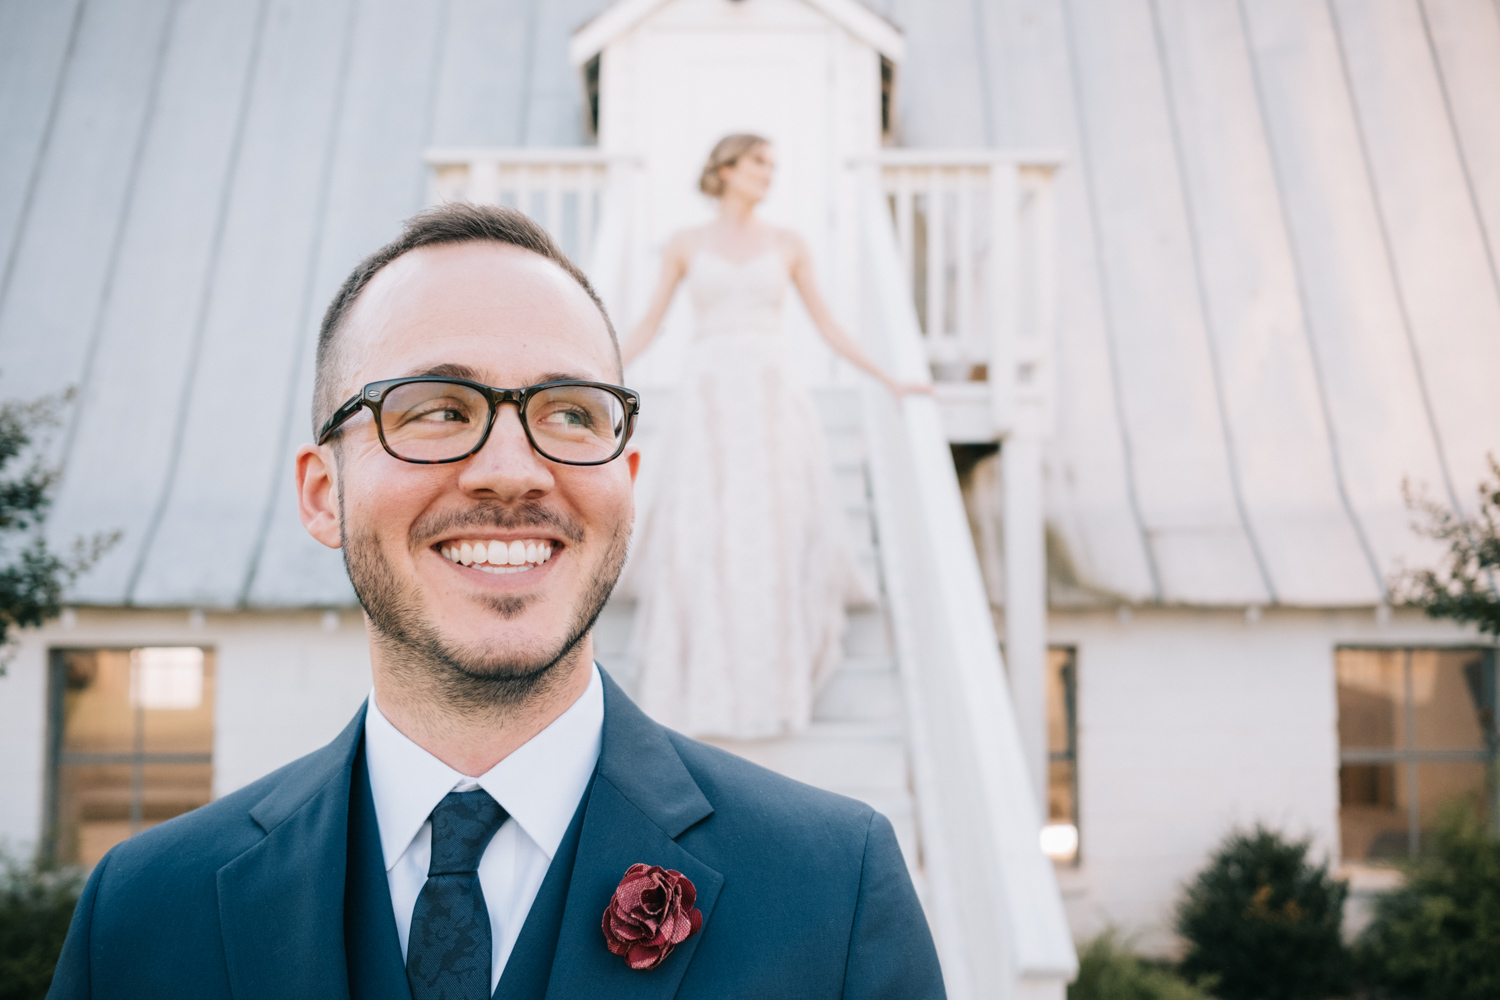 Groom smiles as he hears his bride walk down the stairs for First Look